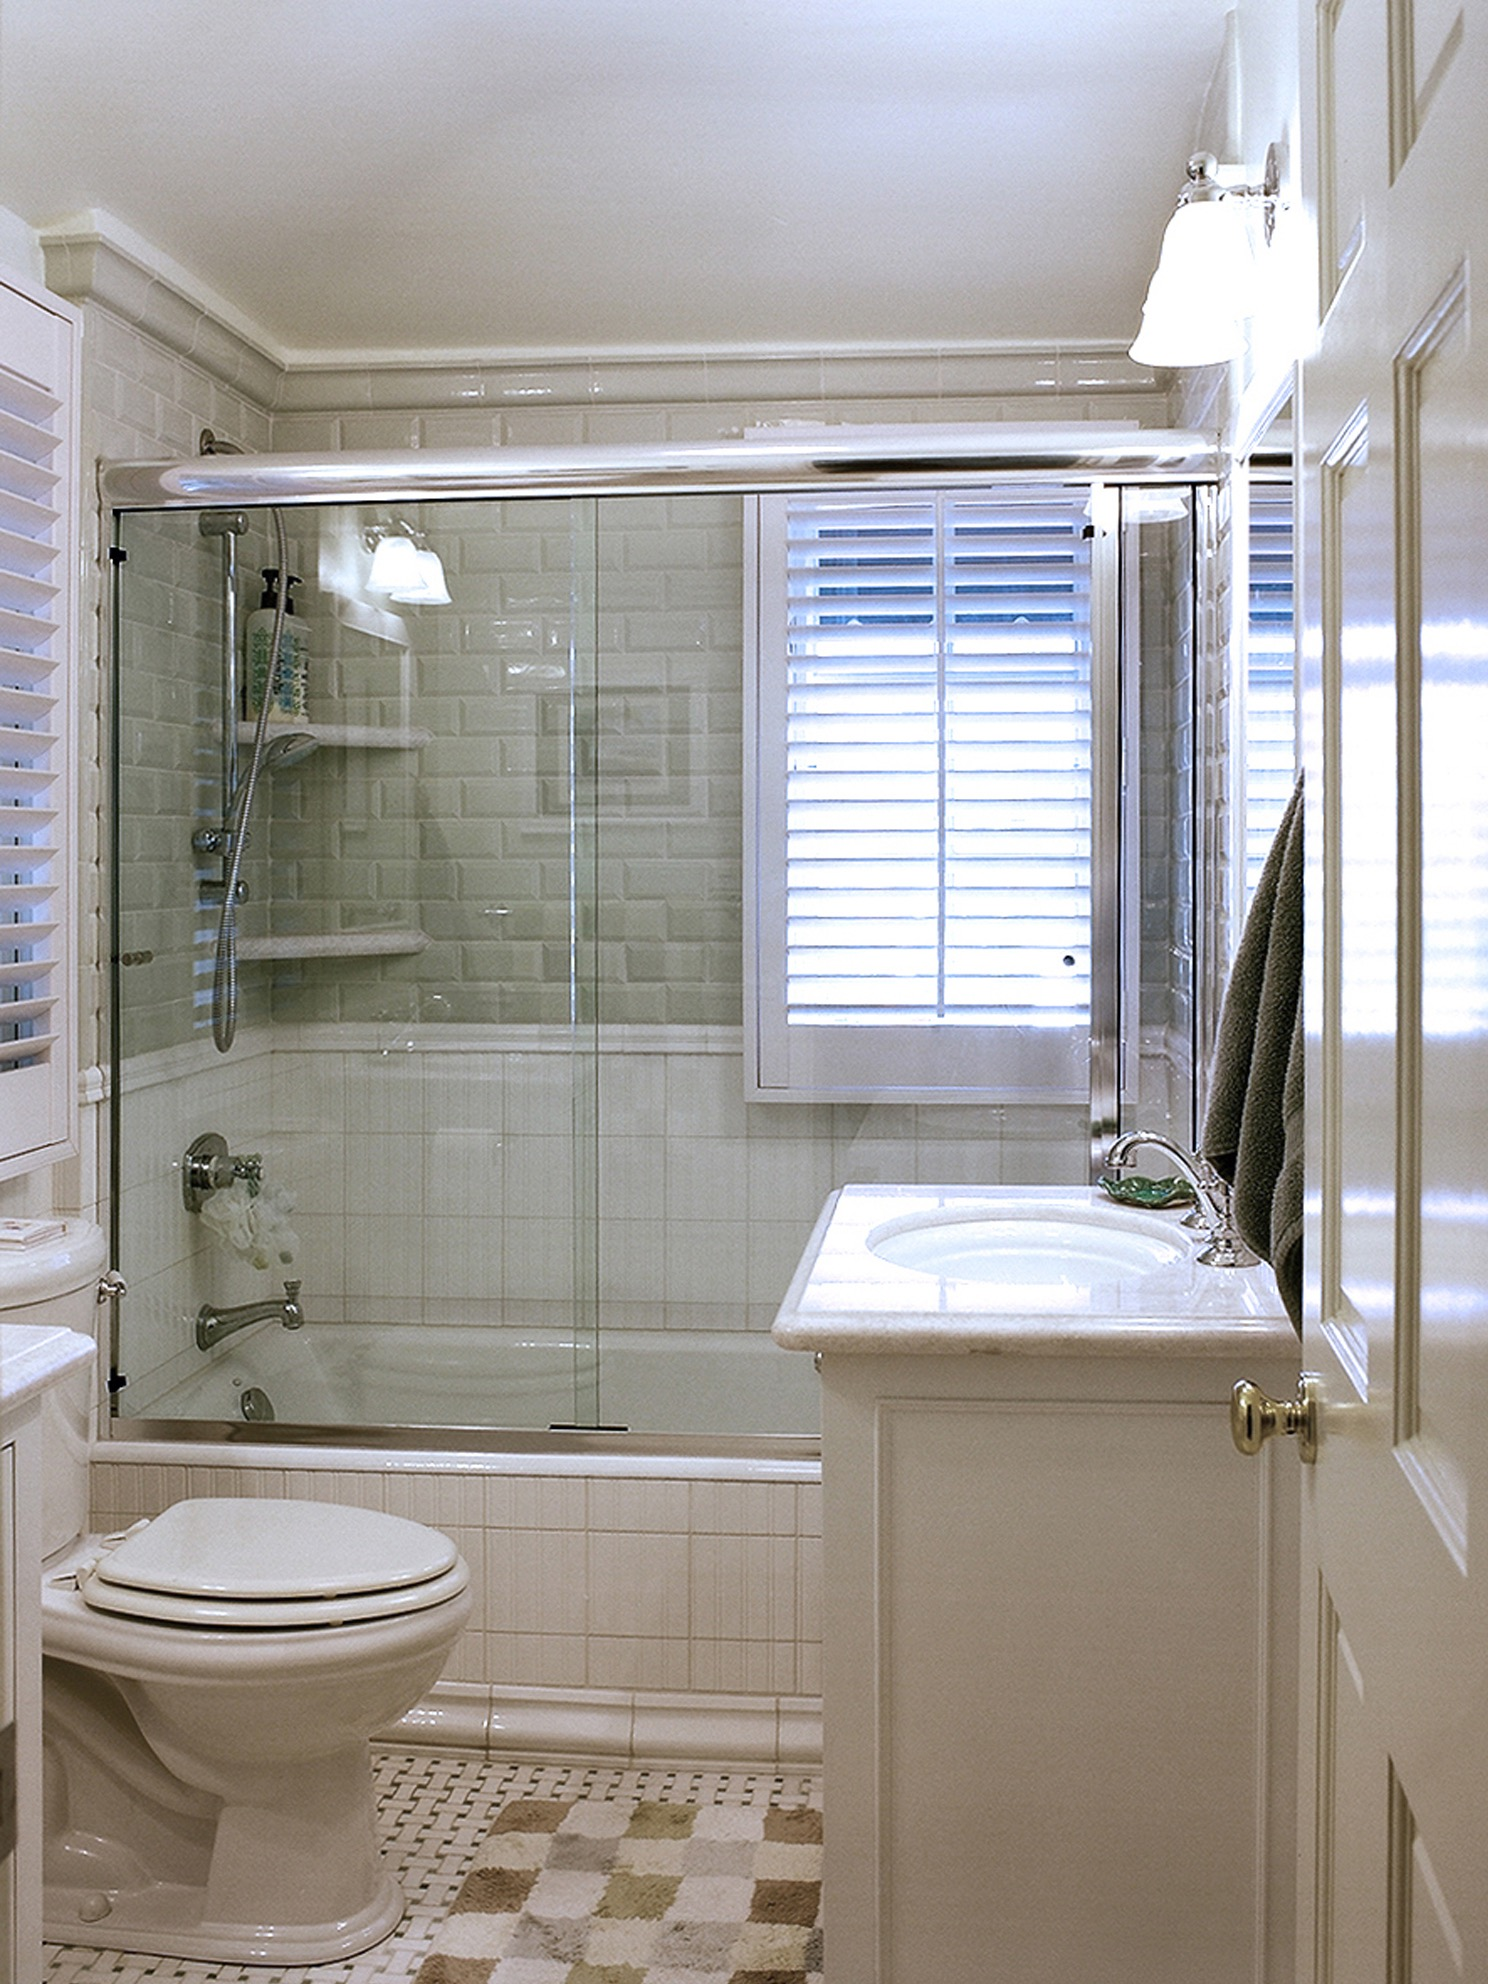 Traditional Bathroom With Bathtub And Frameless Glass Shower Combination (View 16 of 19)